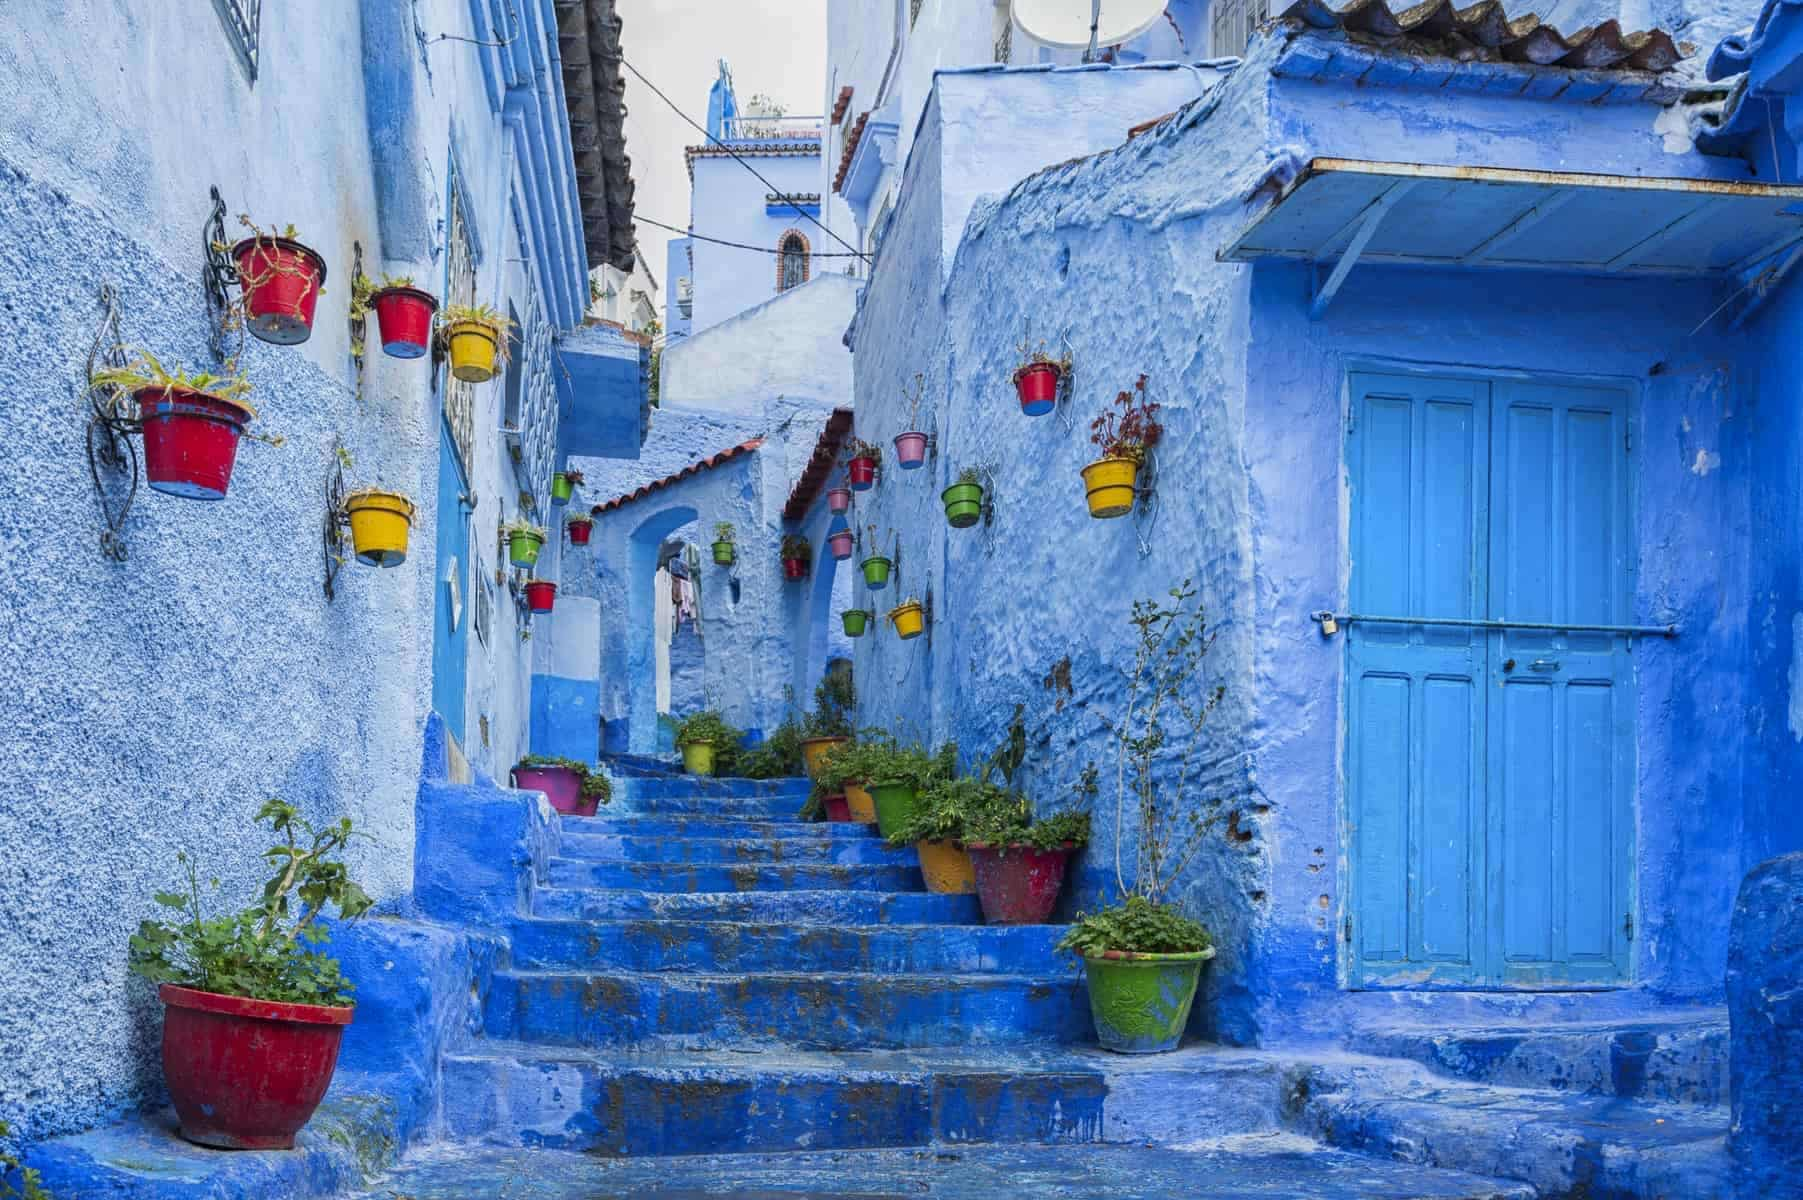 The beautiful blue medina of Chefchaouen, the pearl of Morocco - North Africa